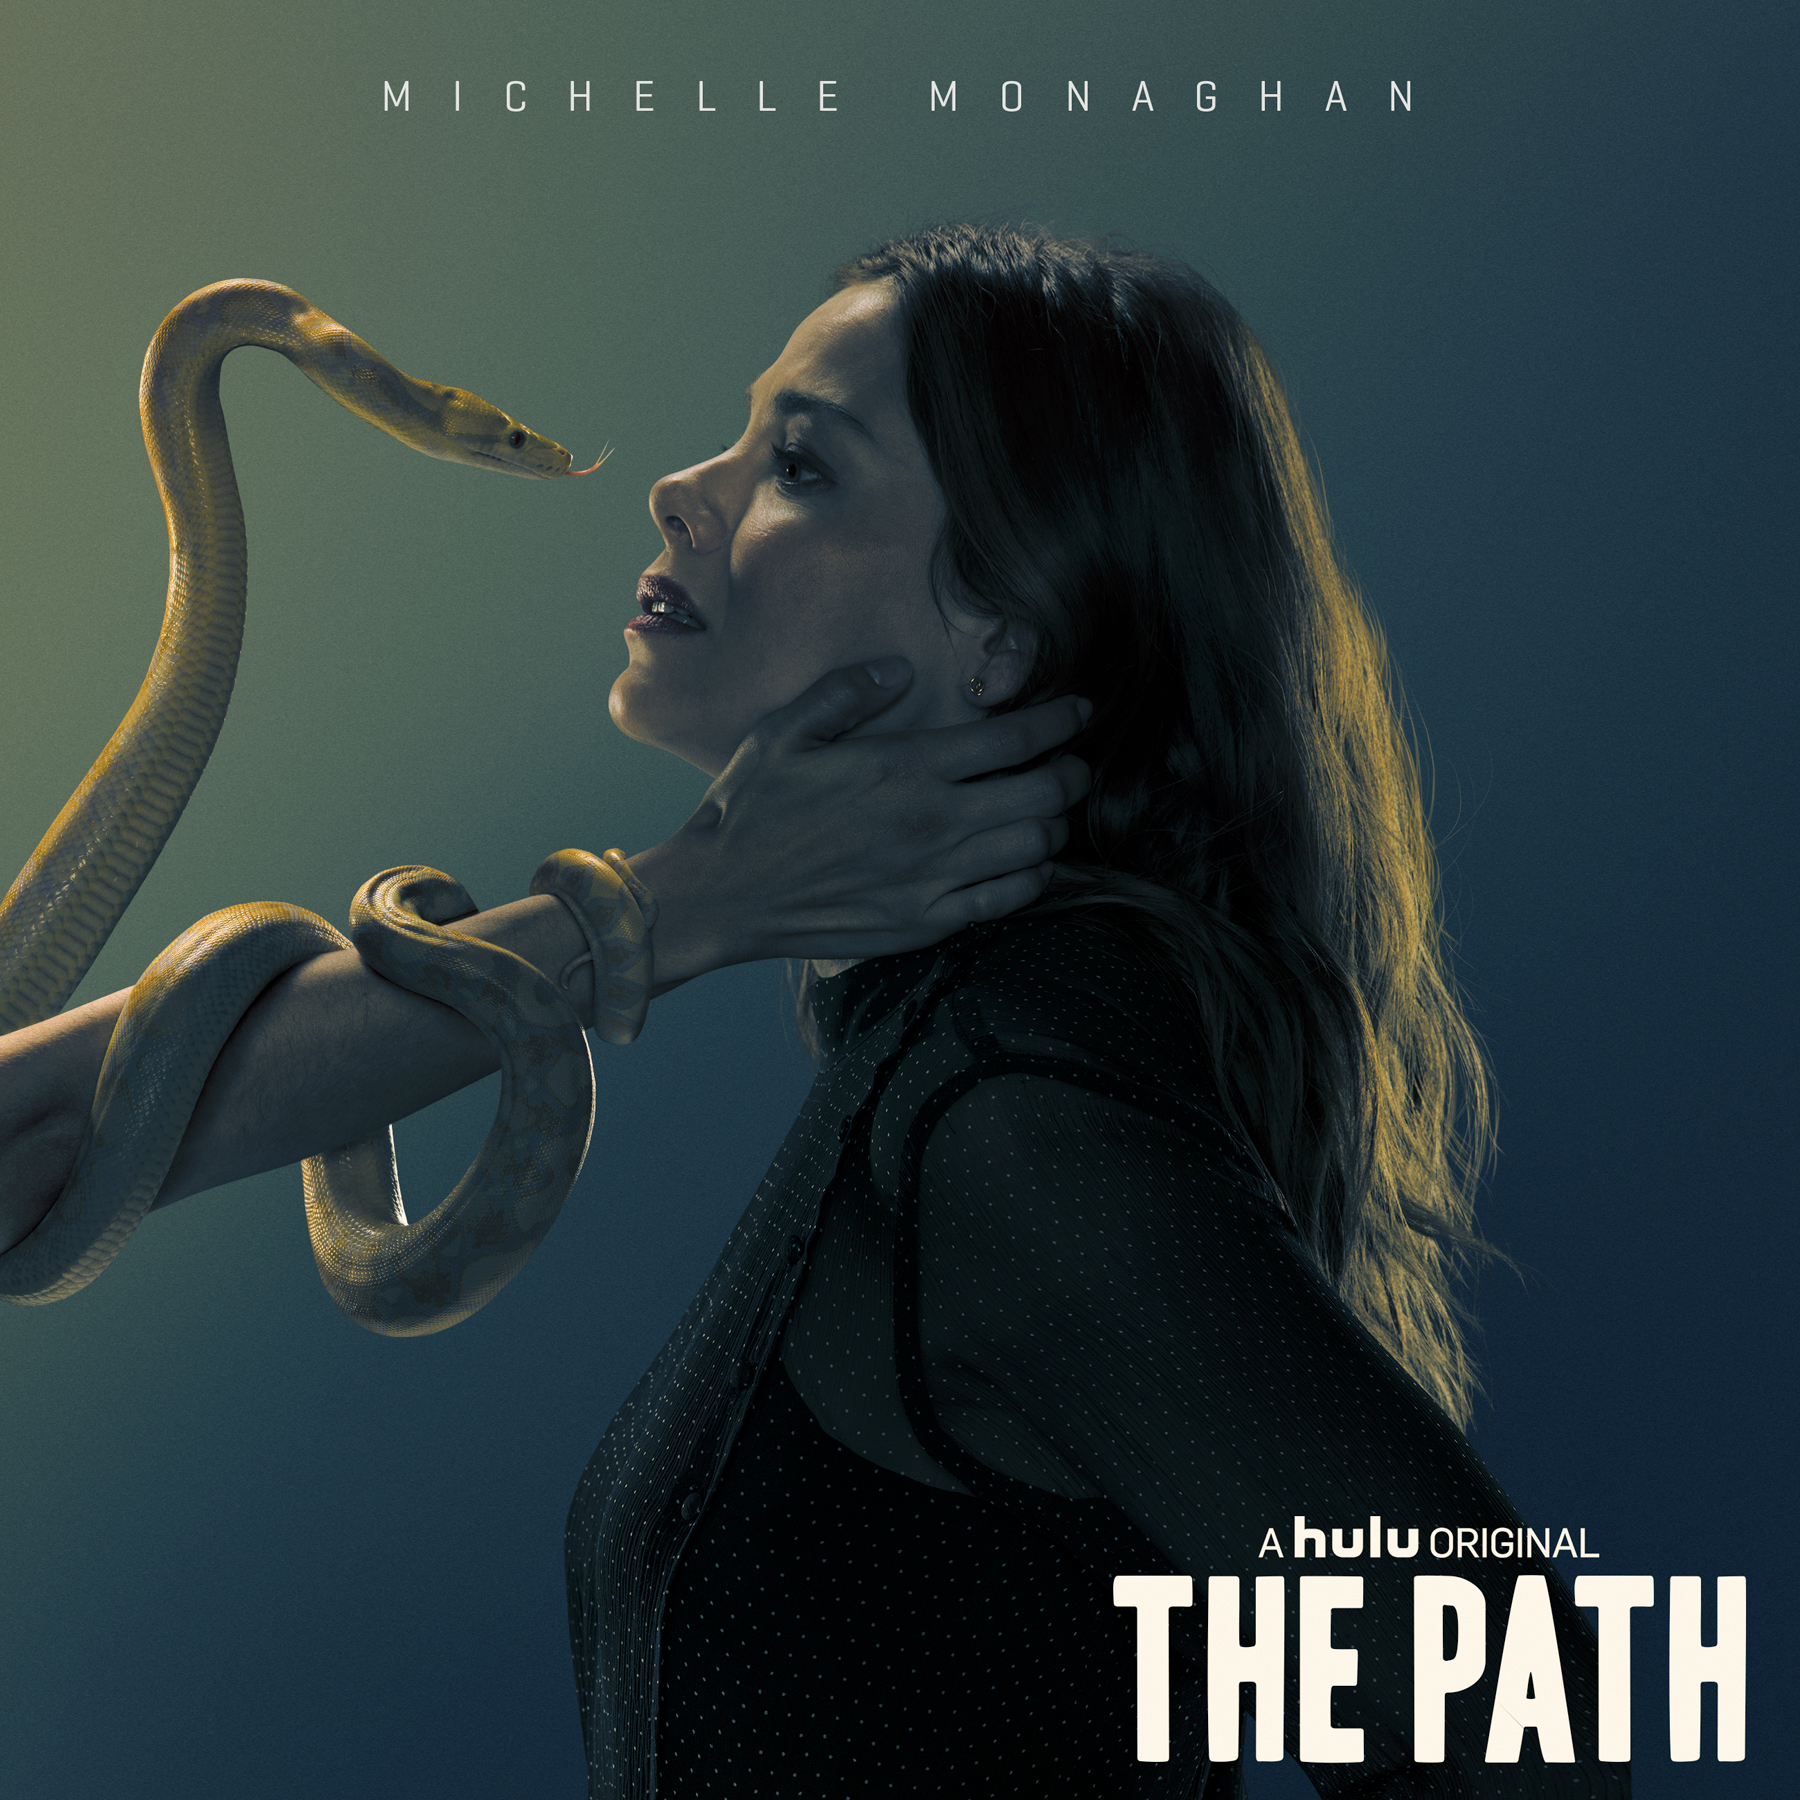 Michelle Monaghan in The Path